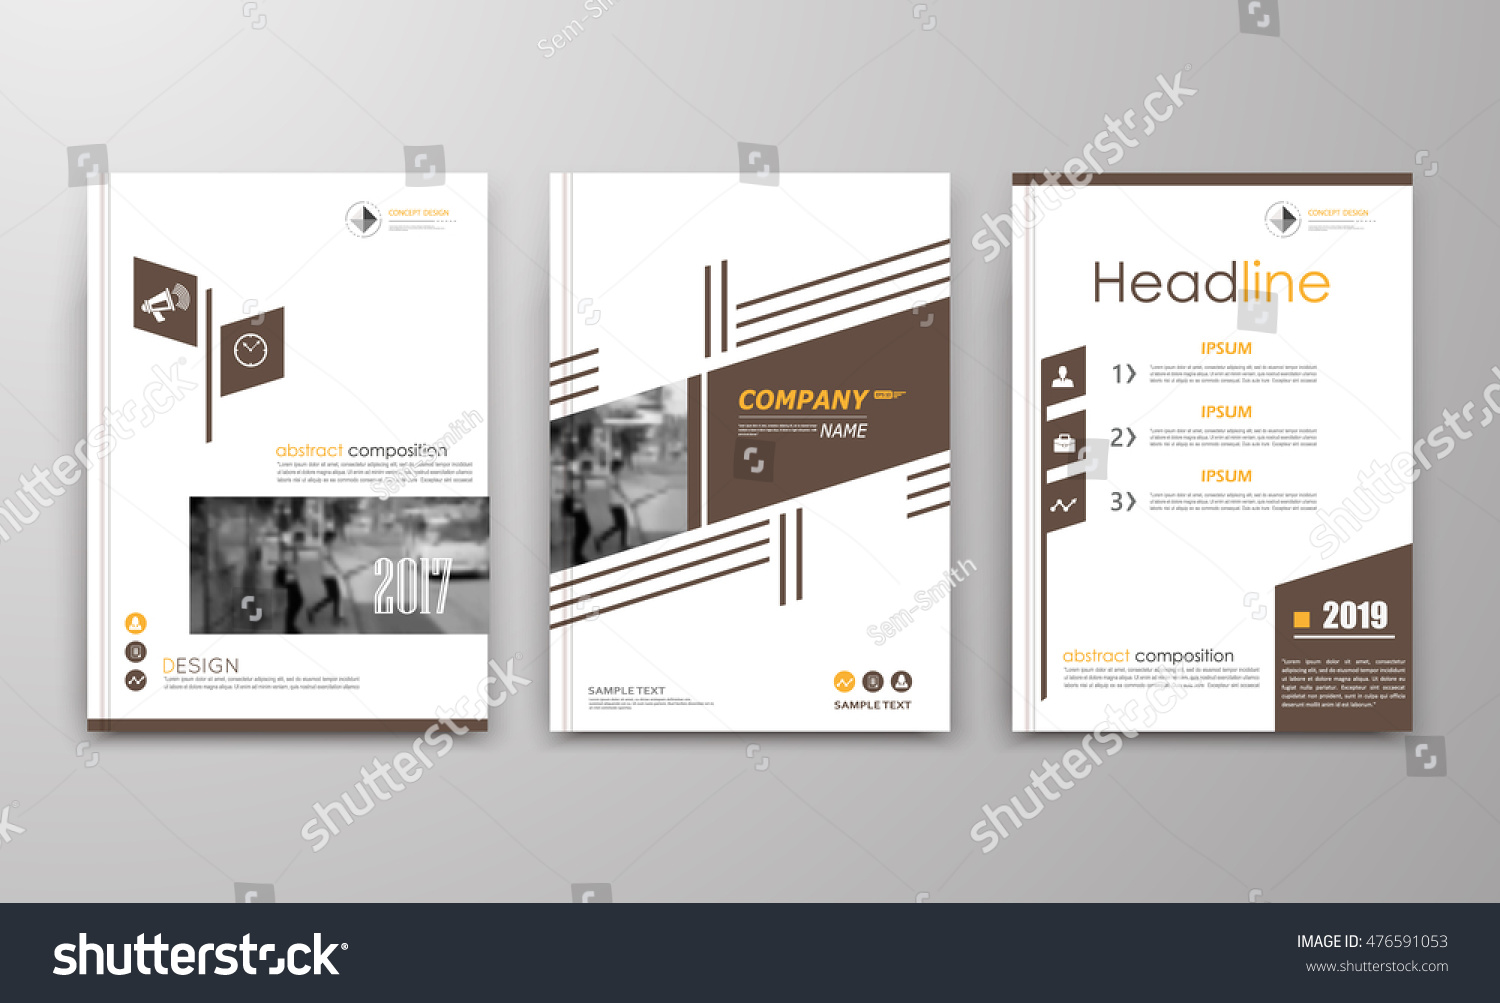 a brochure cover design ad frame stock vector  a4 brochure cover design ad frame font patch a4 title sheet model creative